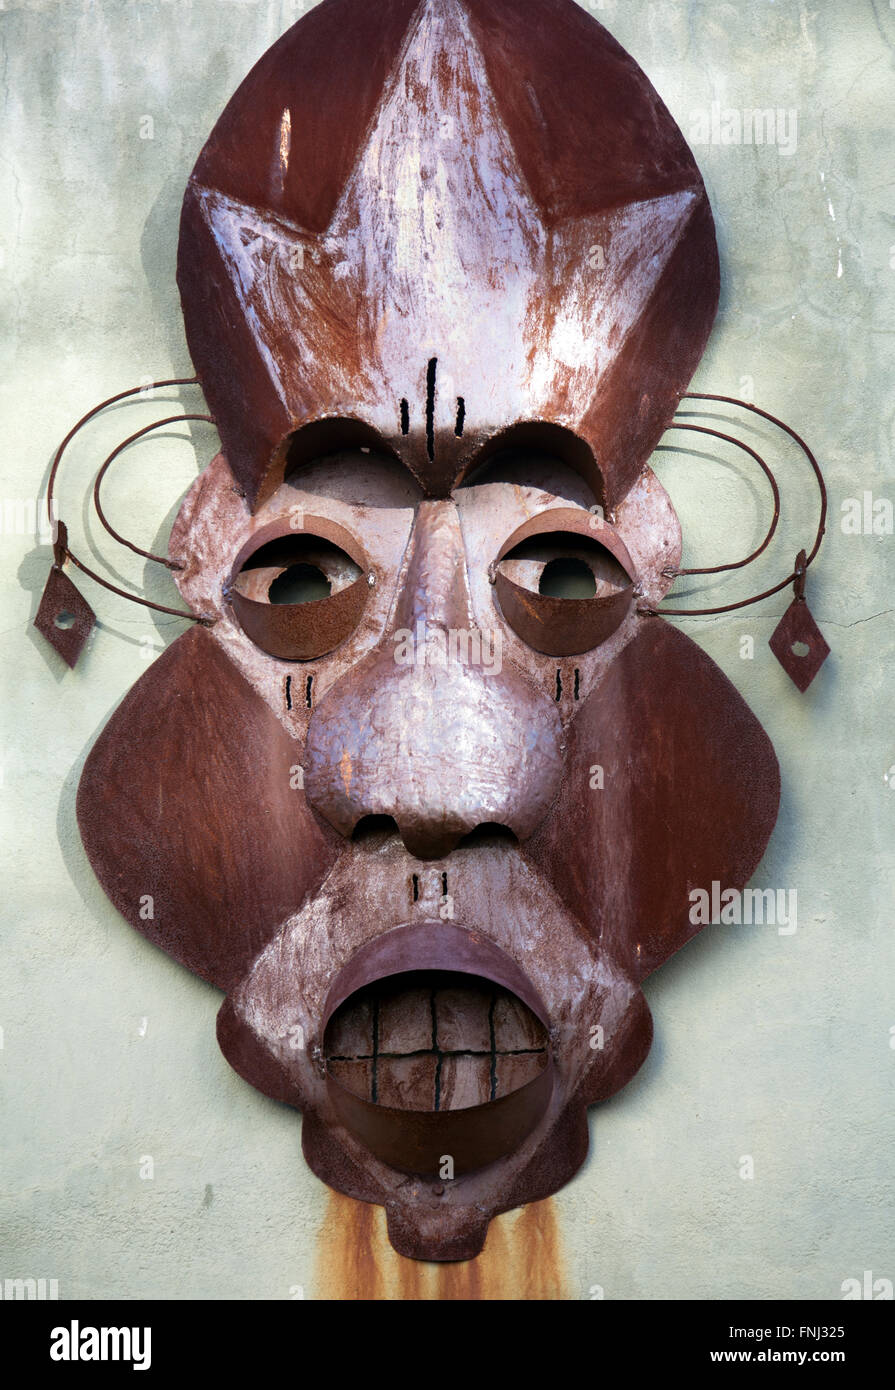 Metal Mask Sculpture on Wall in Cape Town - South Africa - Stock Image